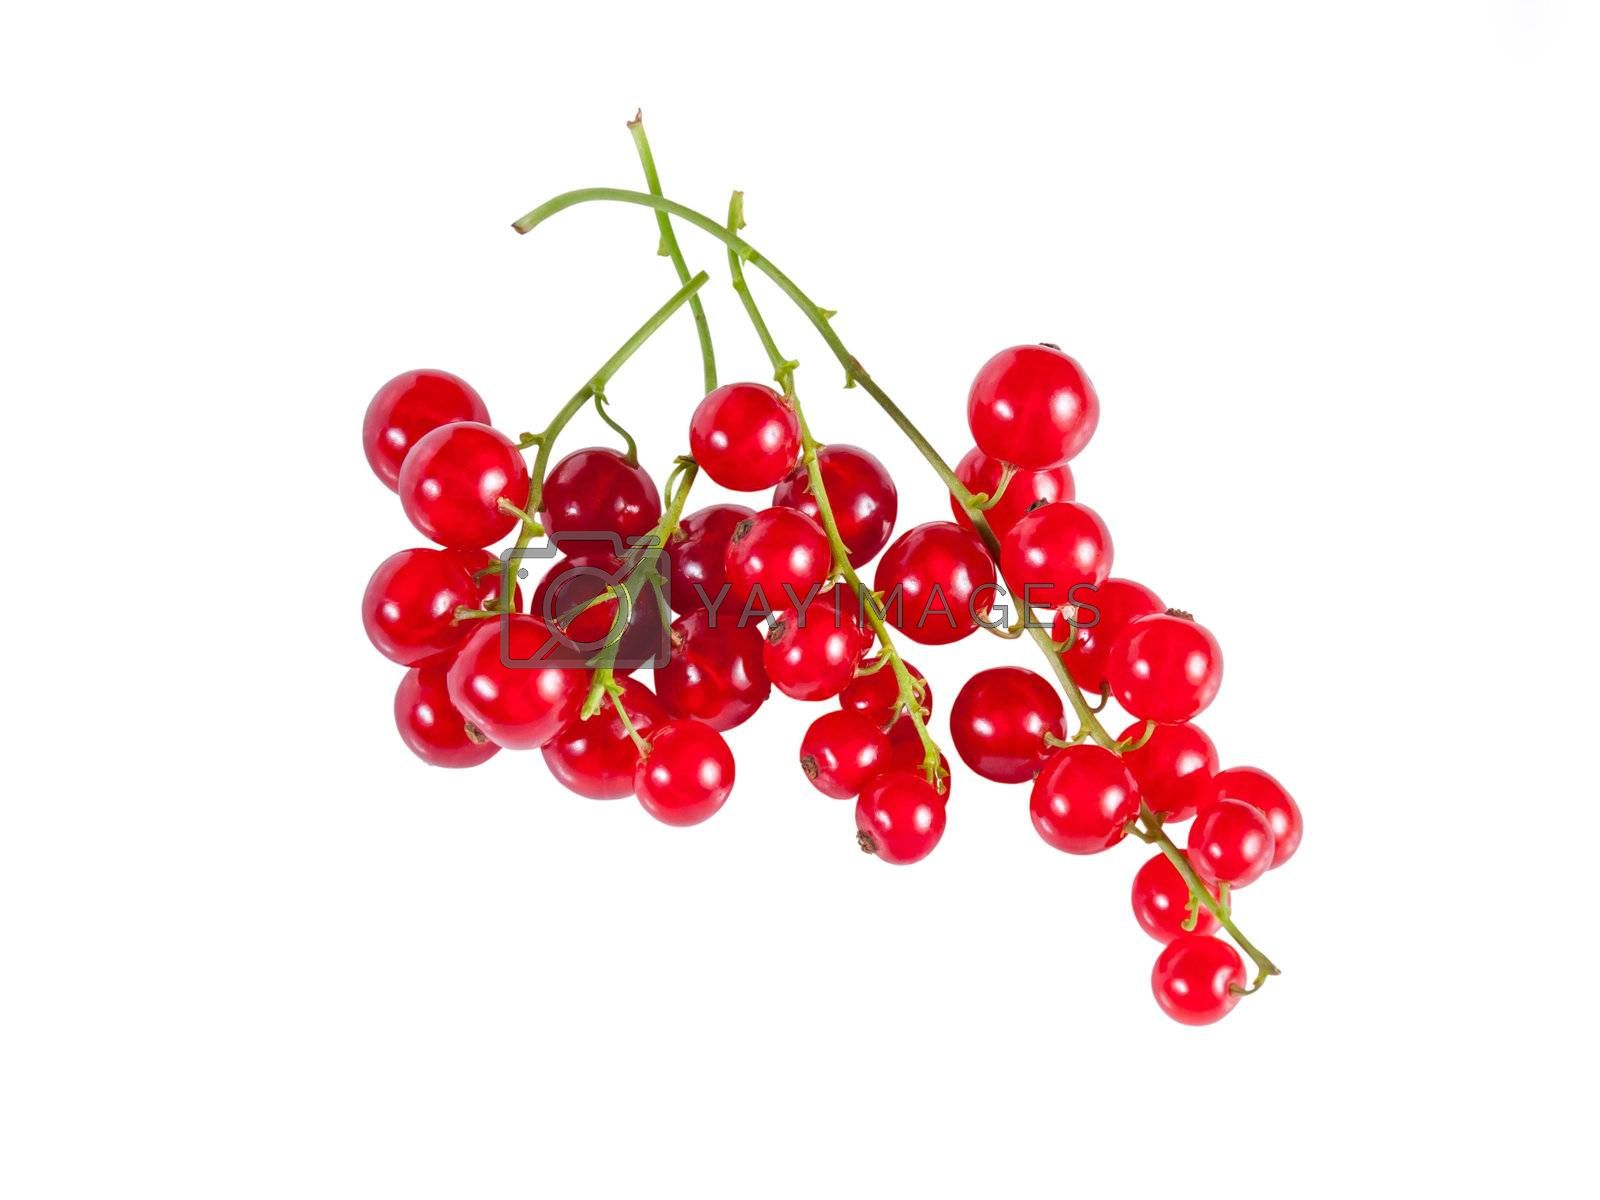 Berry red currants by firewings